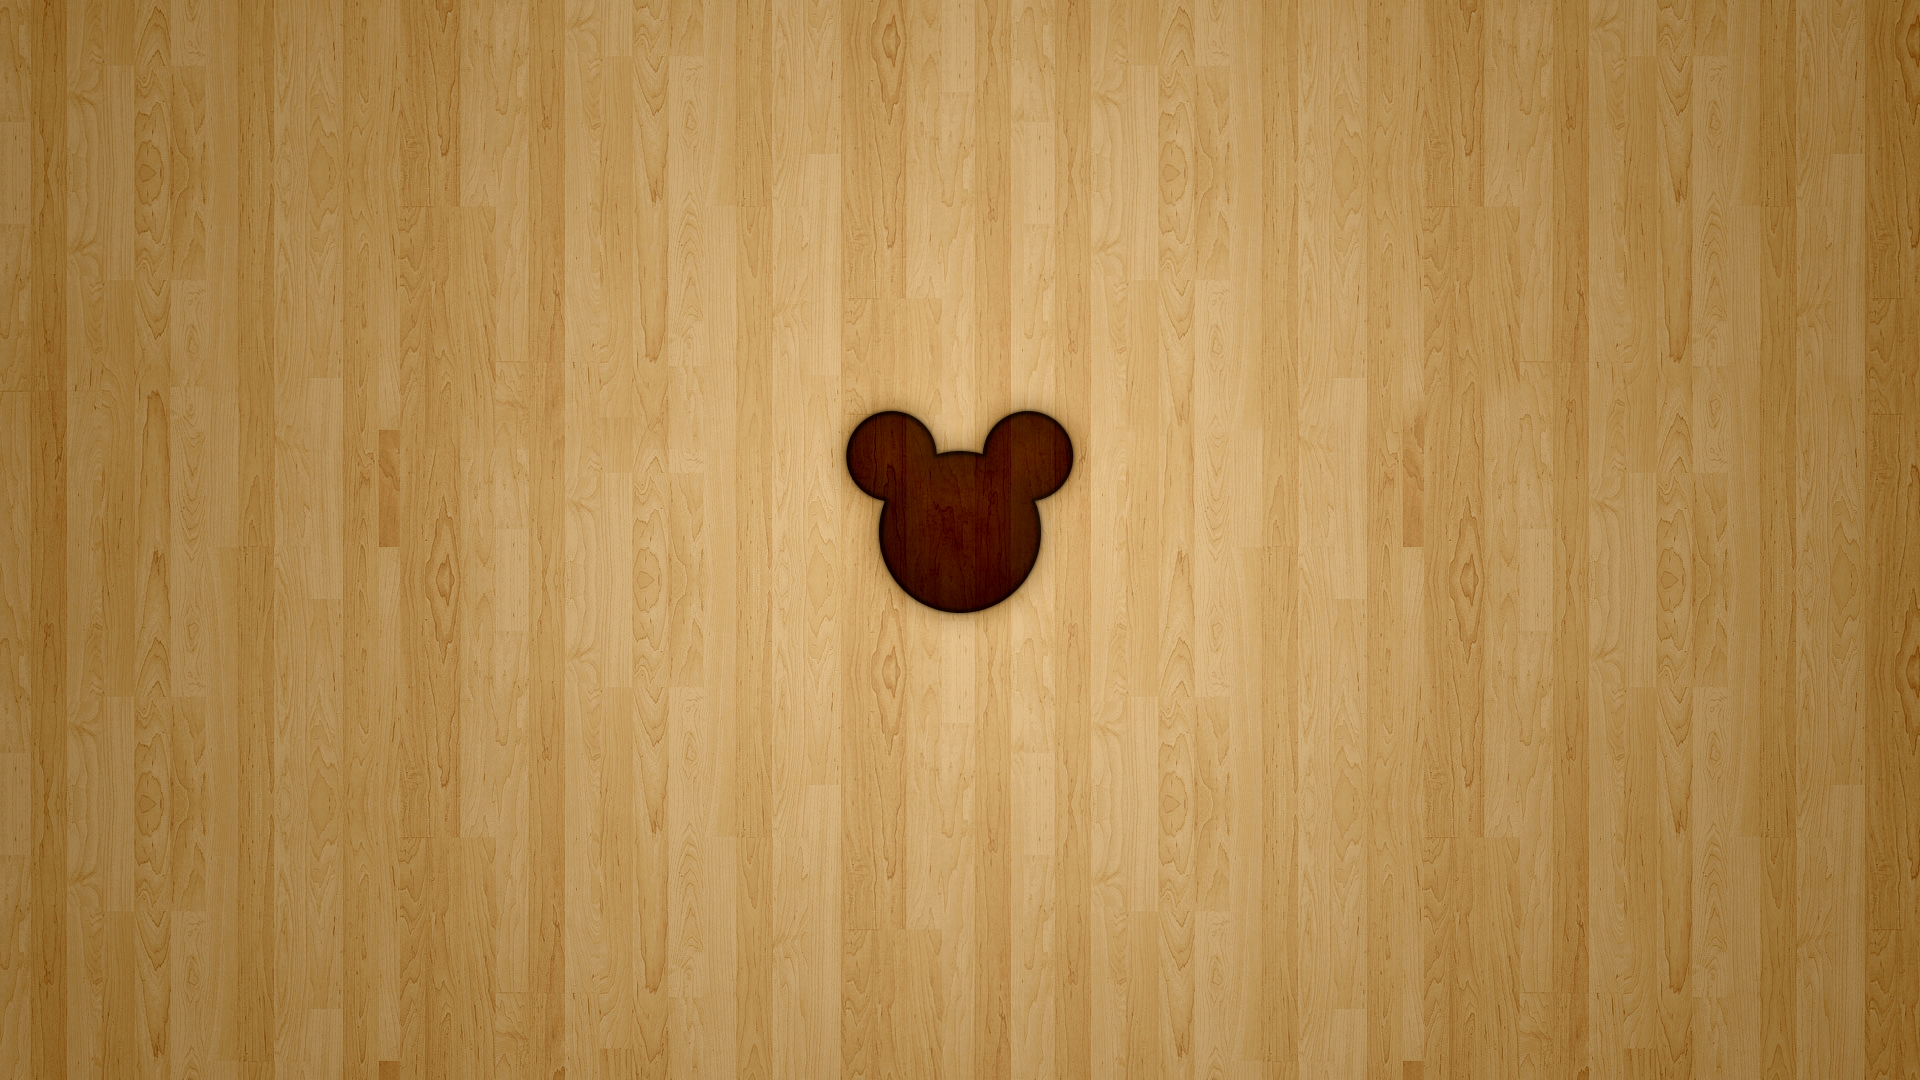 Must see Wallpaper Home Screen Wood - minimalistic-disney  Picture_8626100.png